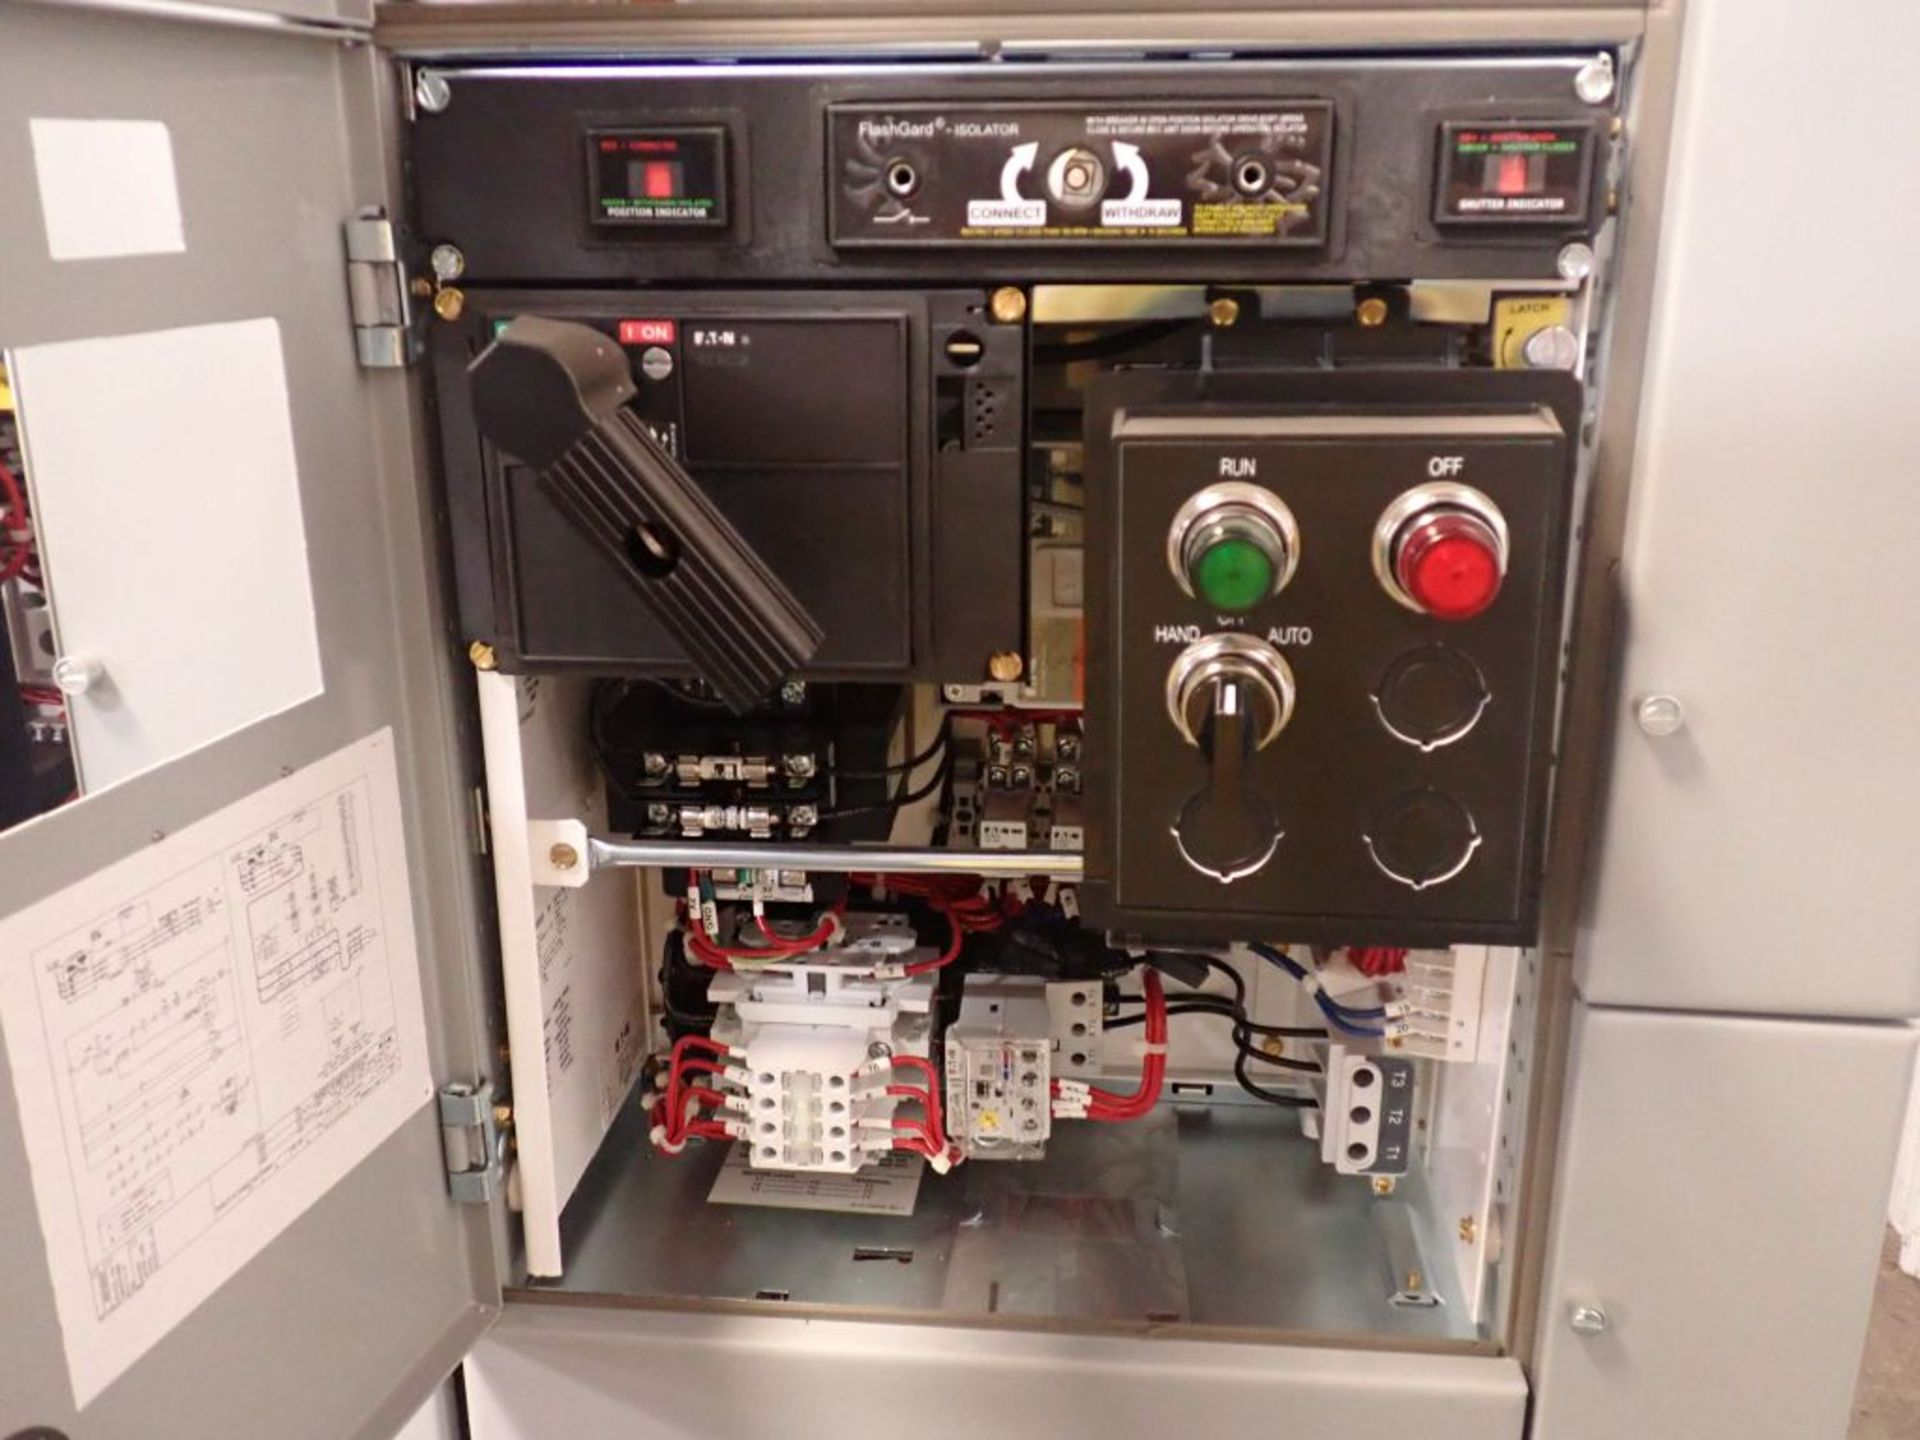 Eaton Freedom 2100 Series Motor Control Center | (2) F206-7A-10HP; (3) F206-15A-10HP; (1) FDRB-100A; - Image 73 of 87